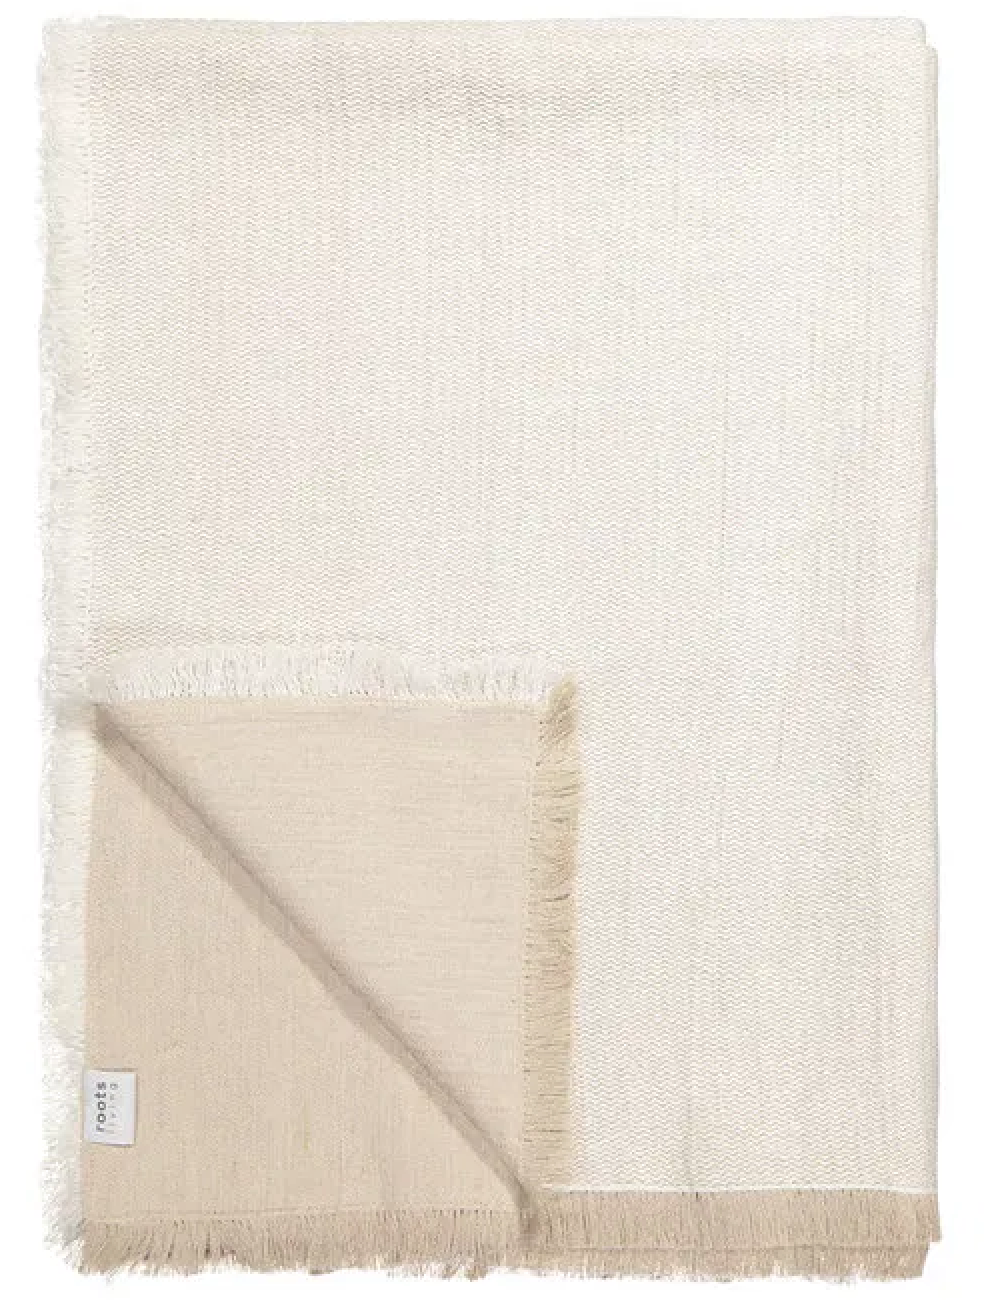 Antique White Fishbone Linen Throw/Bedspread White ROOTS LIVING Davanti Home Ideas